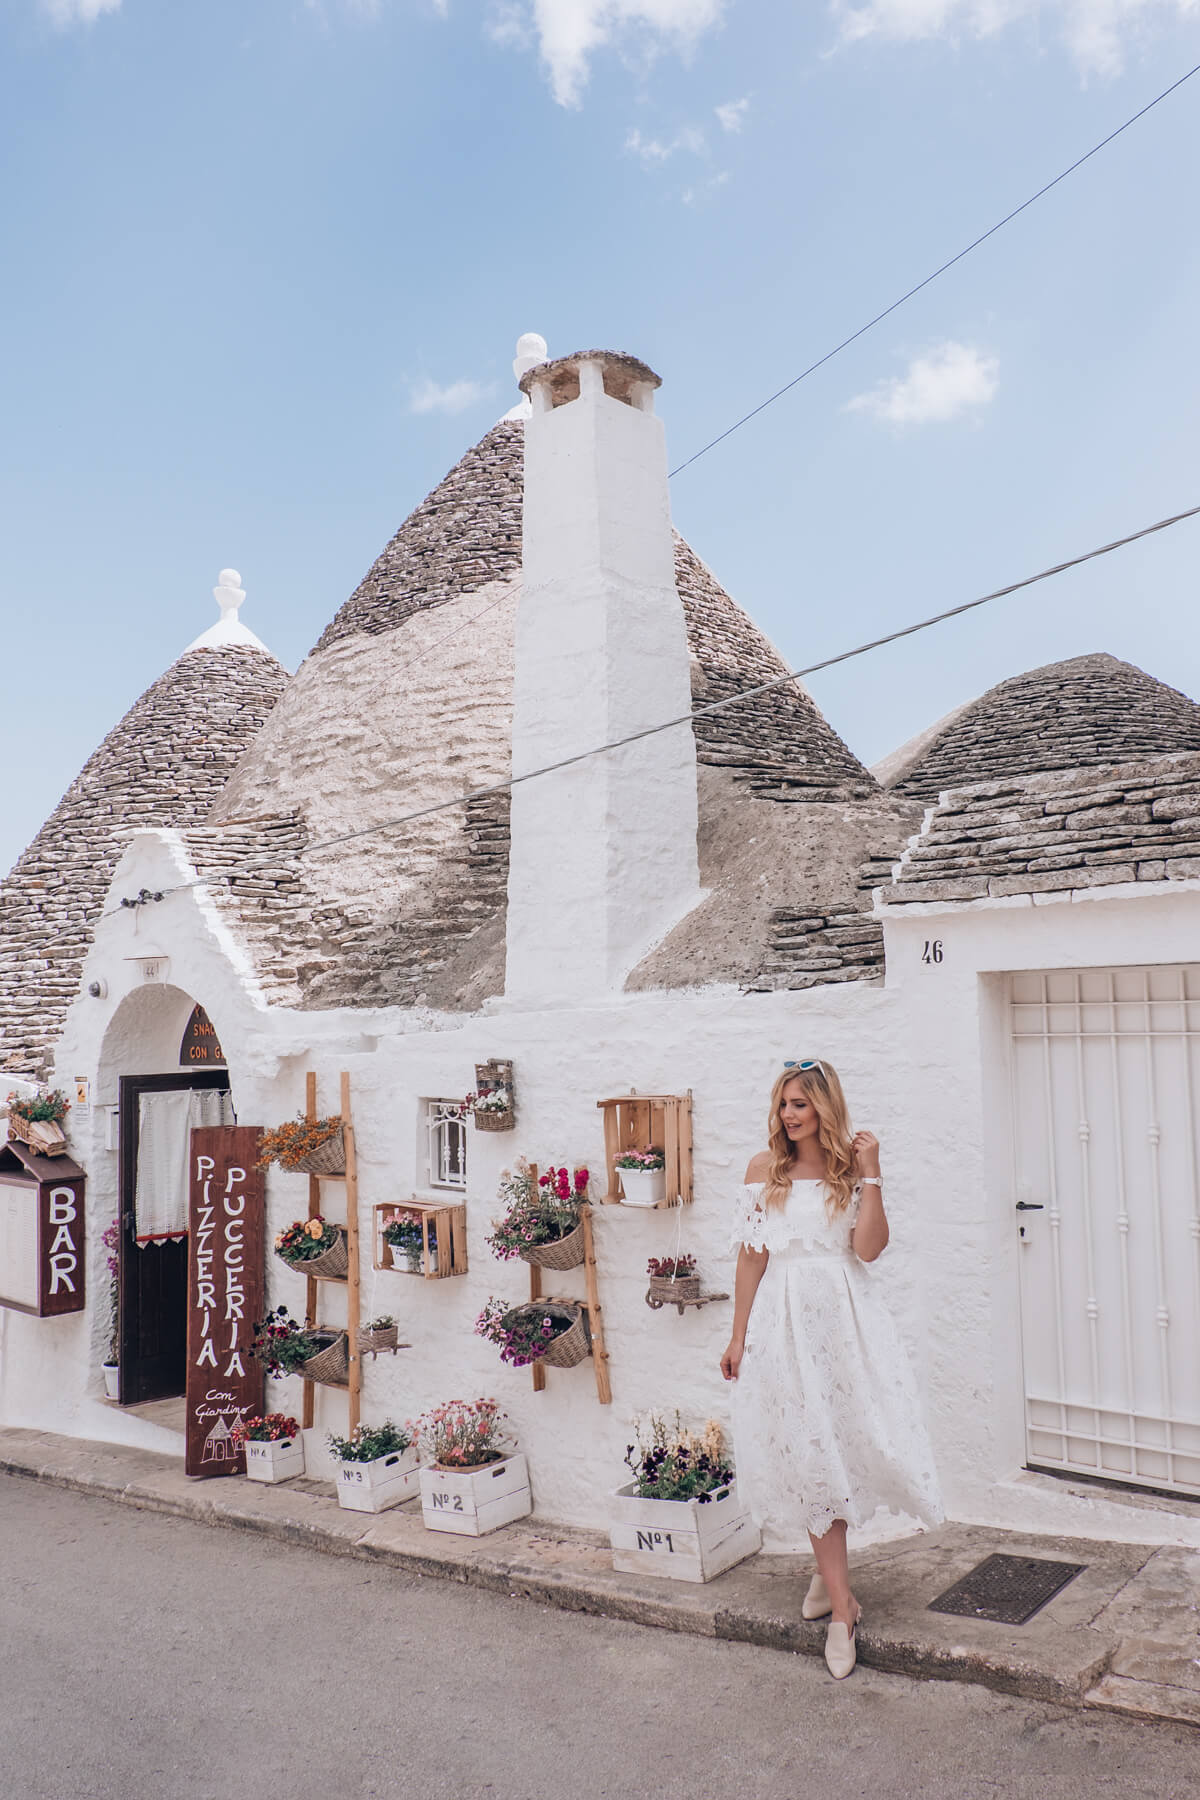 Why visit Alberobello